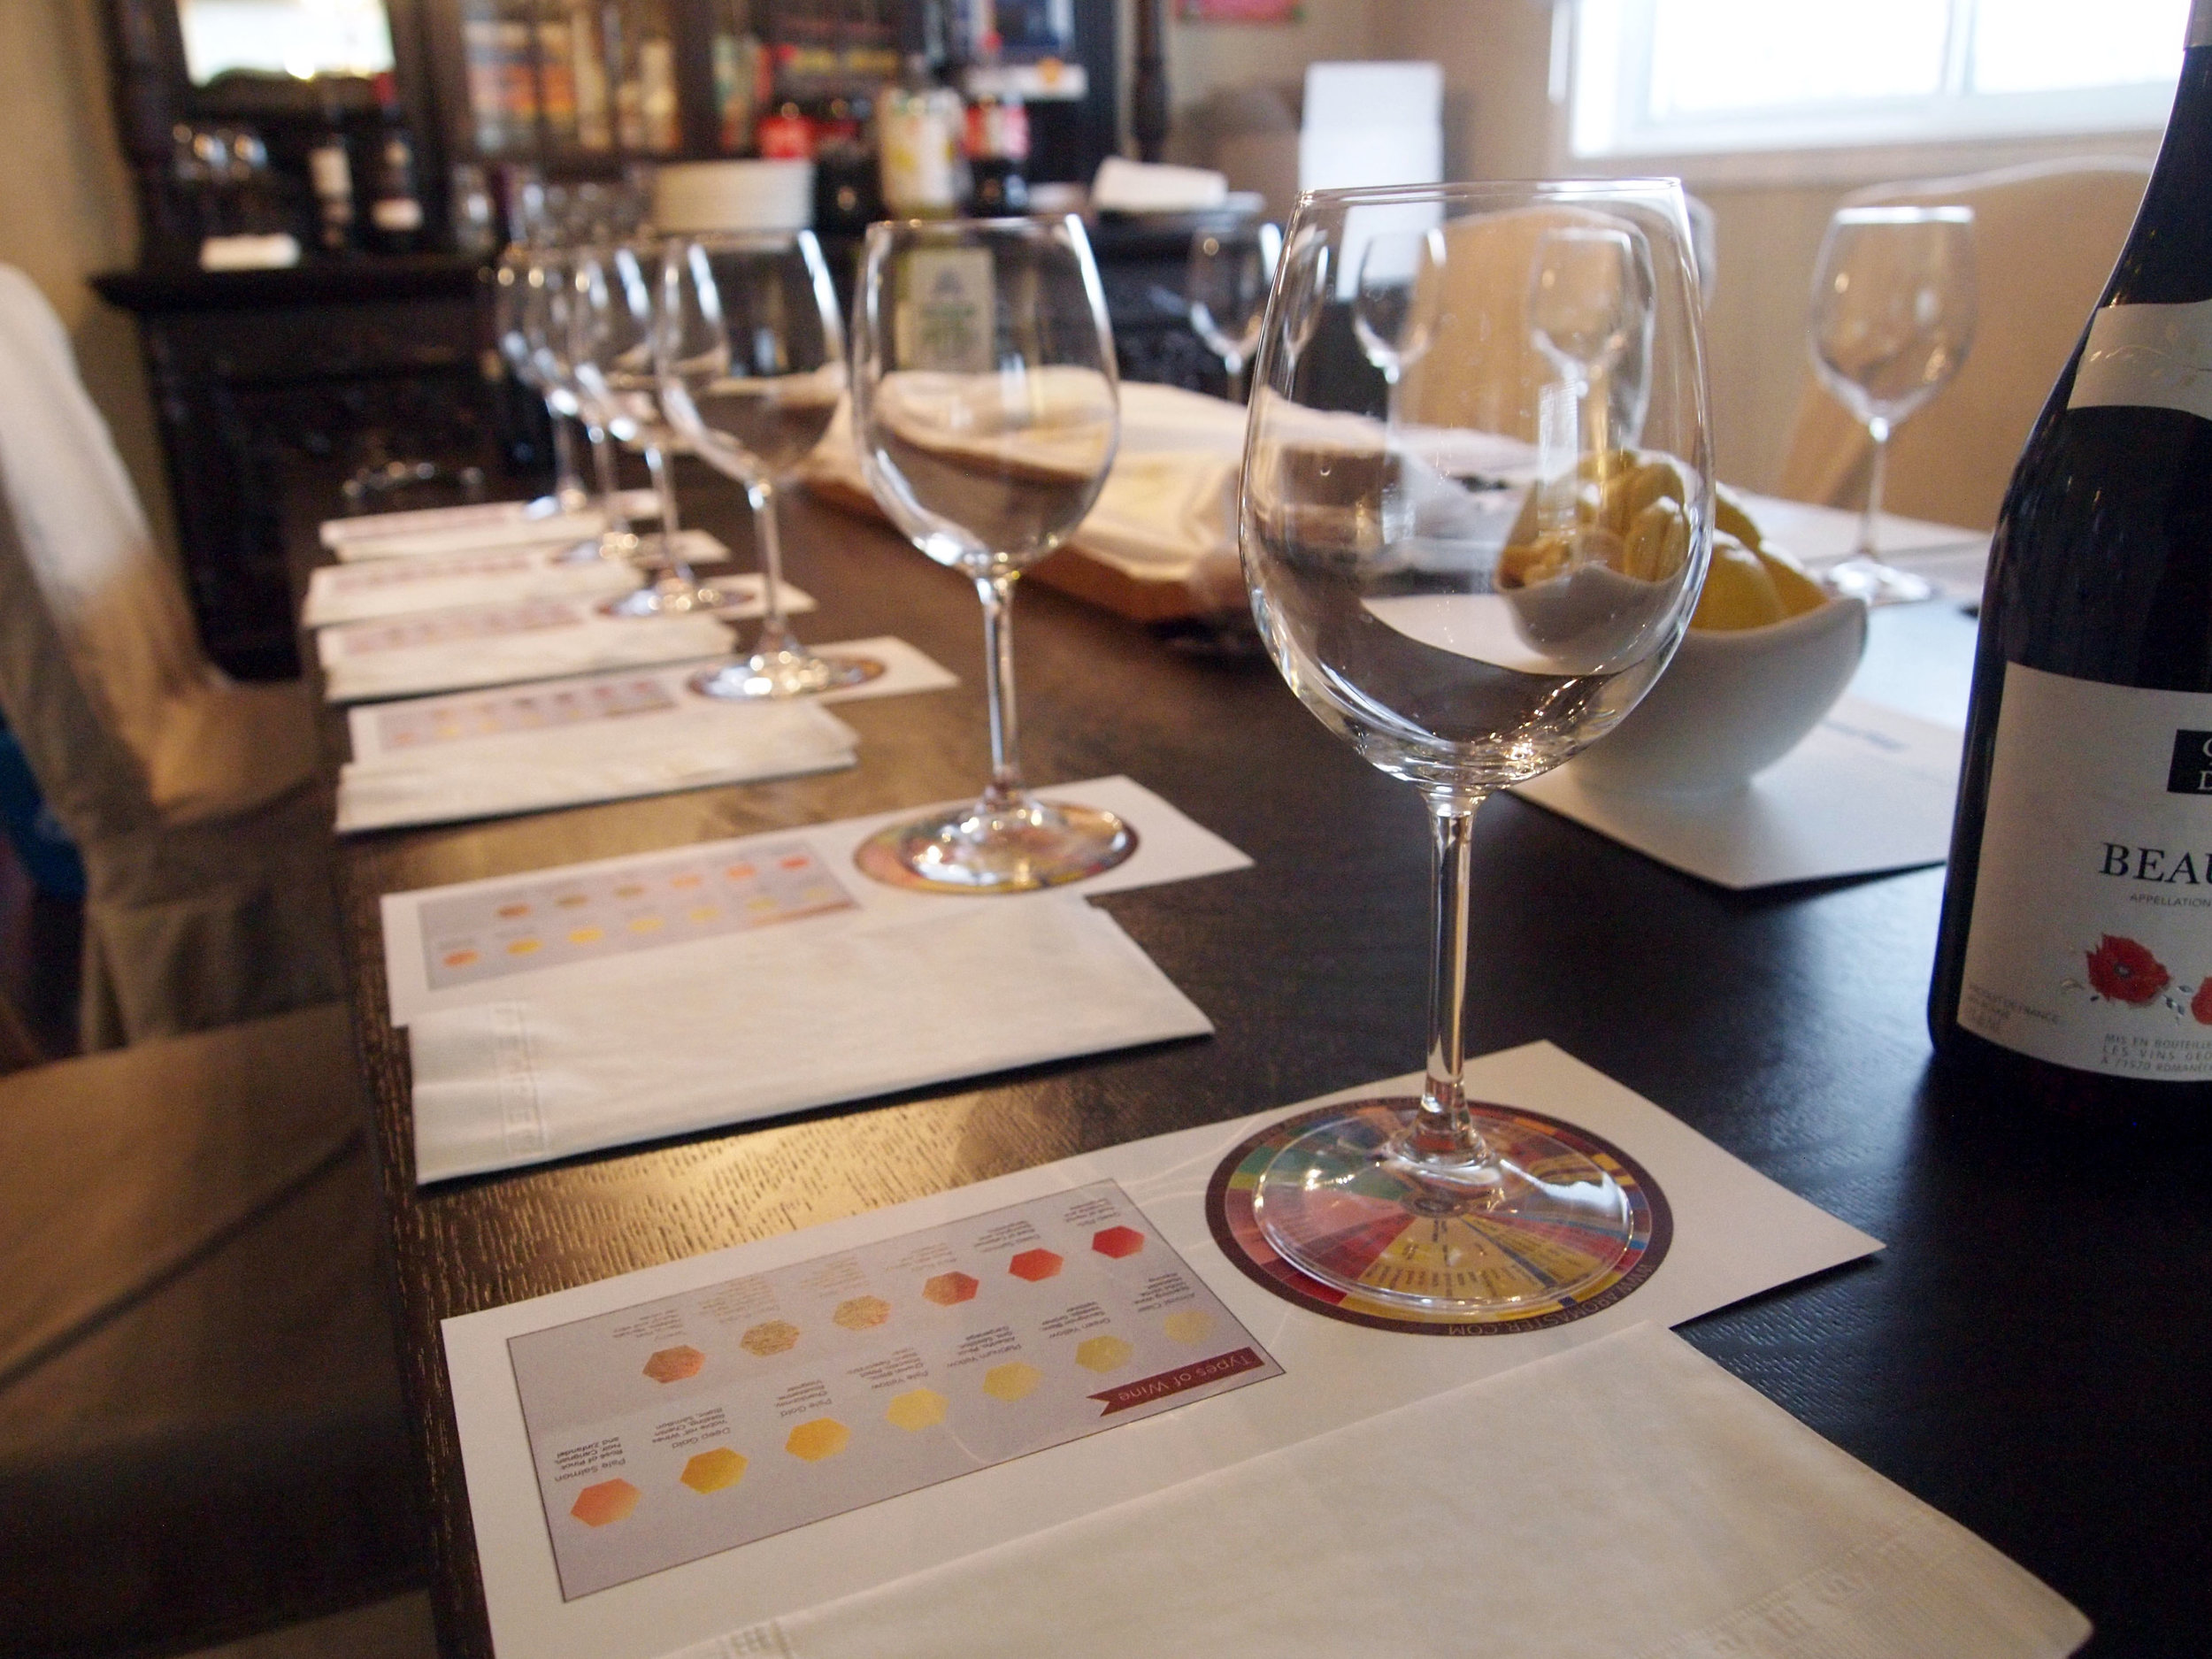 Private Events - Looking for something different to introduce to your social circle? Want to learn about wine or experience fun wine themes? Then host a Vines Play private wine tasting.